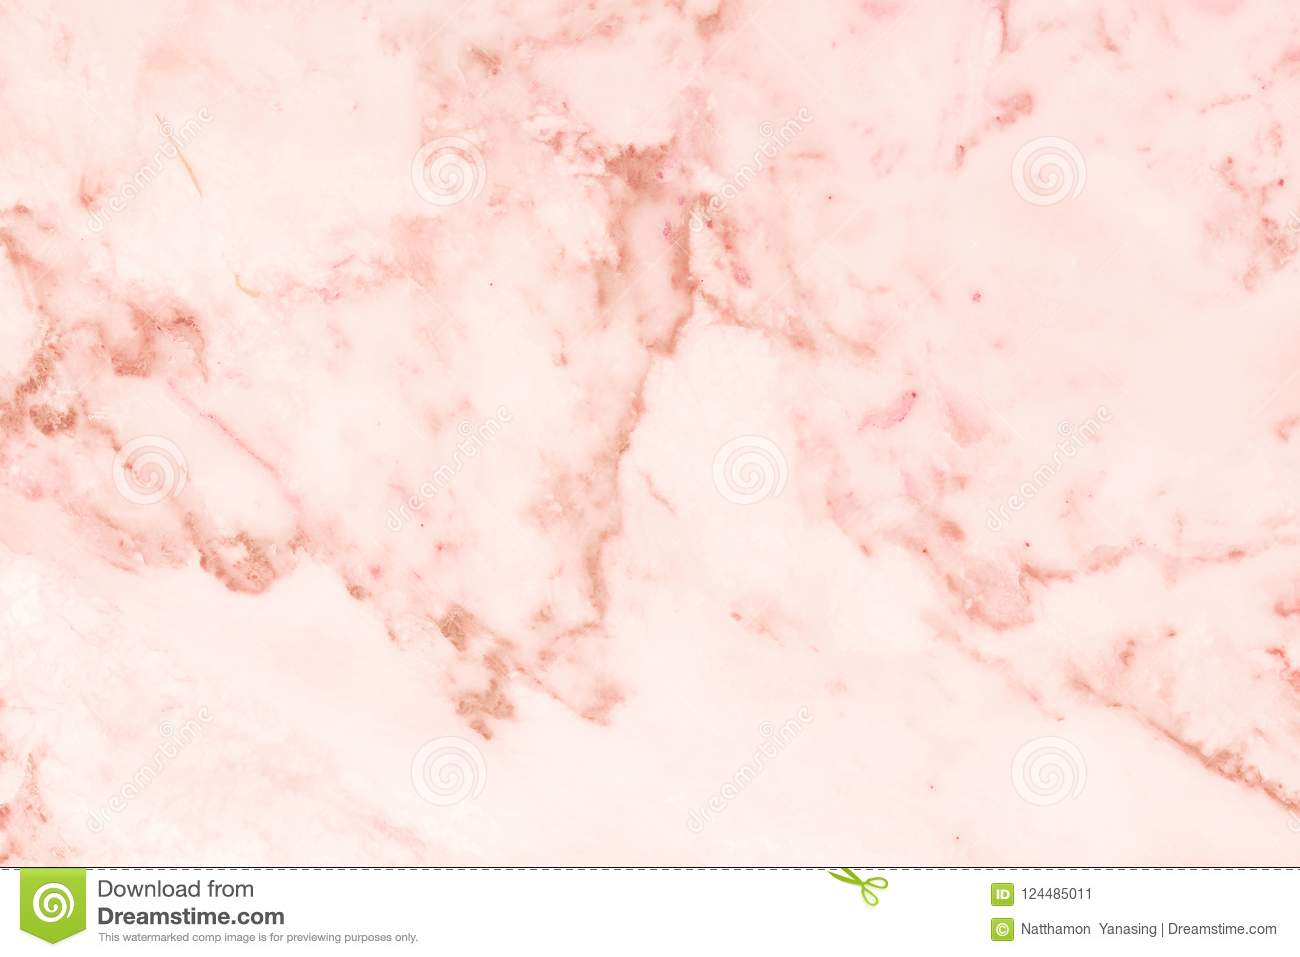 Rose Gold Marble Texture In Natural Pattern With High Resolution For Background And Design Art Work Tiles Stone Floor Stock Image Image Of Marble Grey 124485011